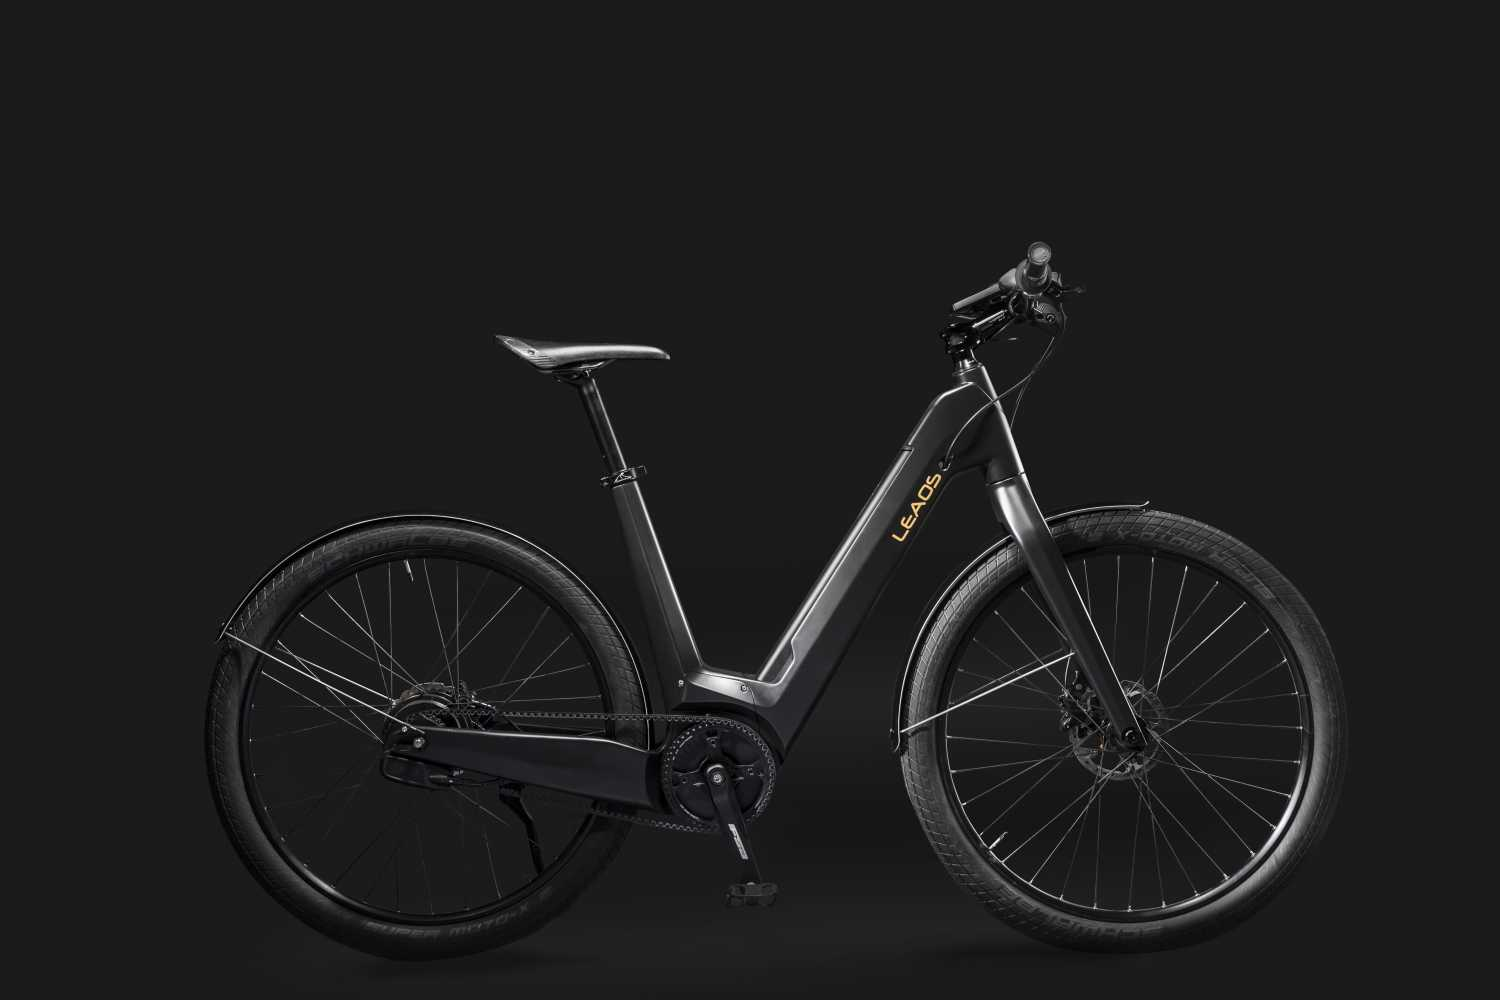 LEAOS 2018 Carbon Urban E-Bike